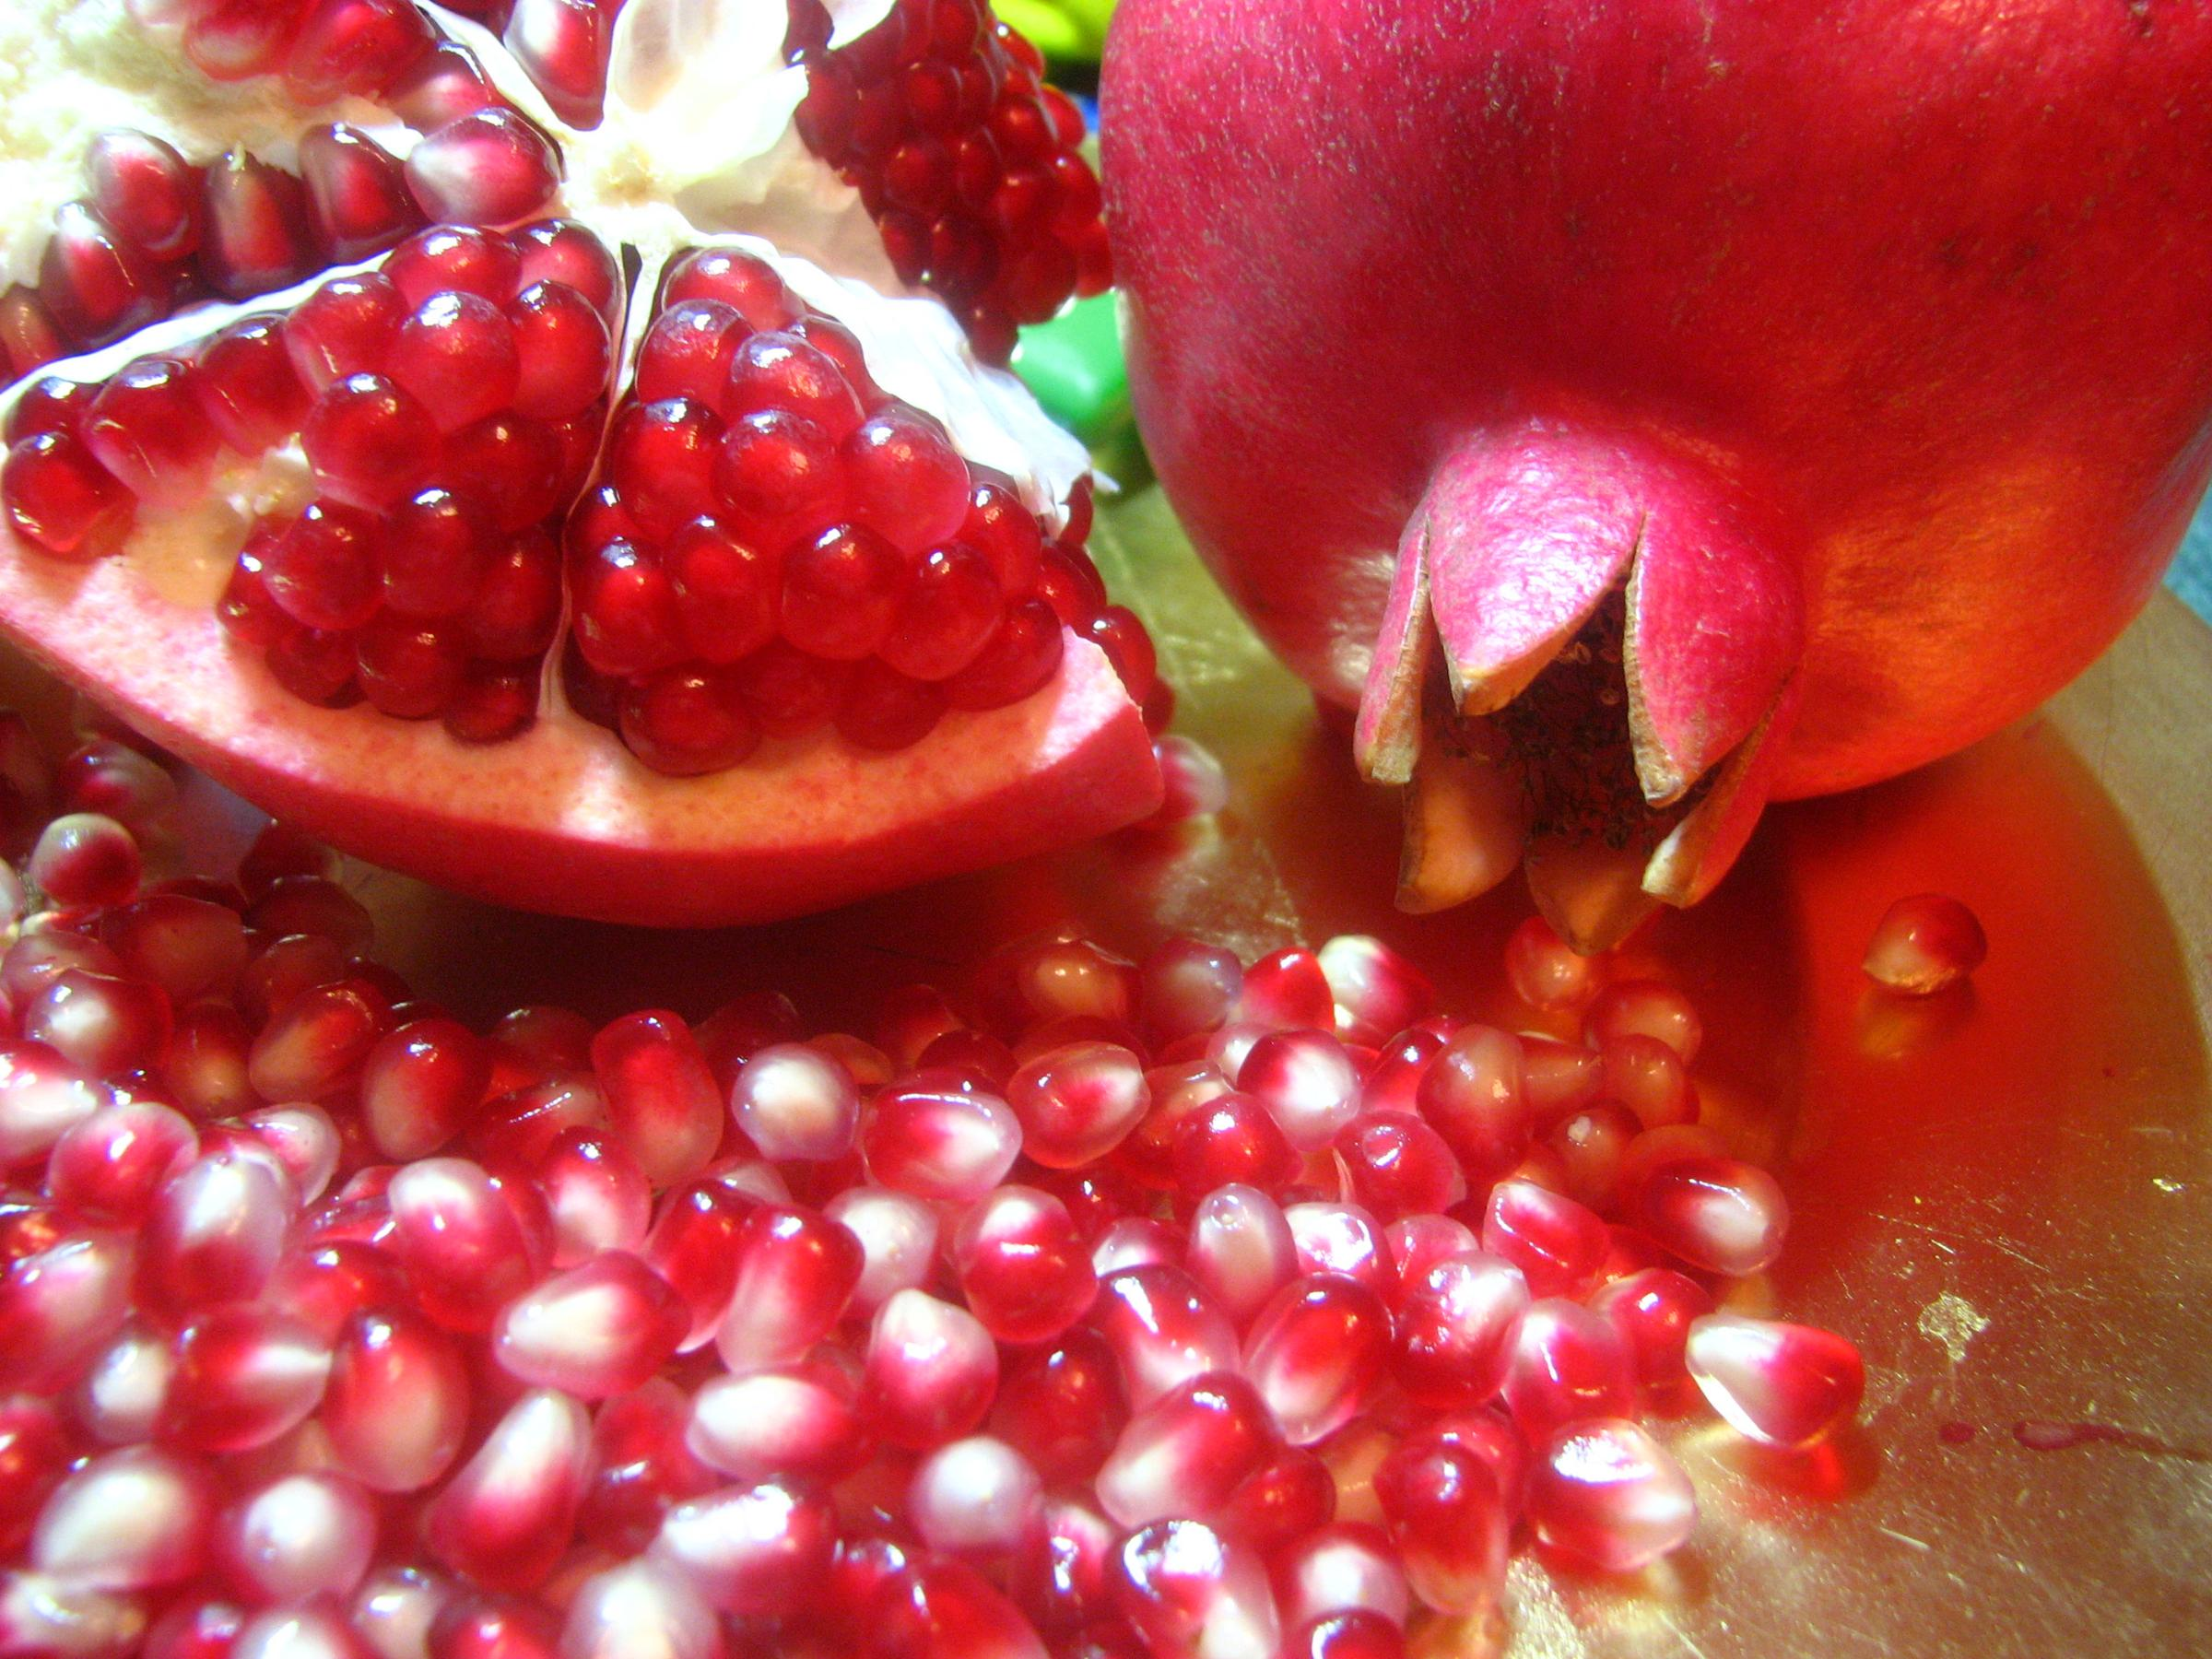 Desktop wallpaper fruits and flowers - Cool Pomegranate Fruit Wallpaper Desktop Wallpaper With 2400x1800